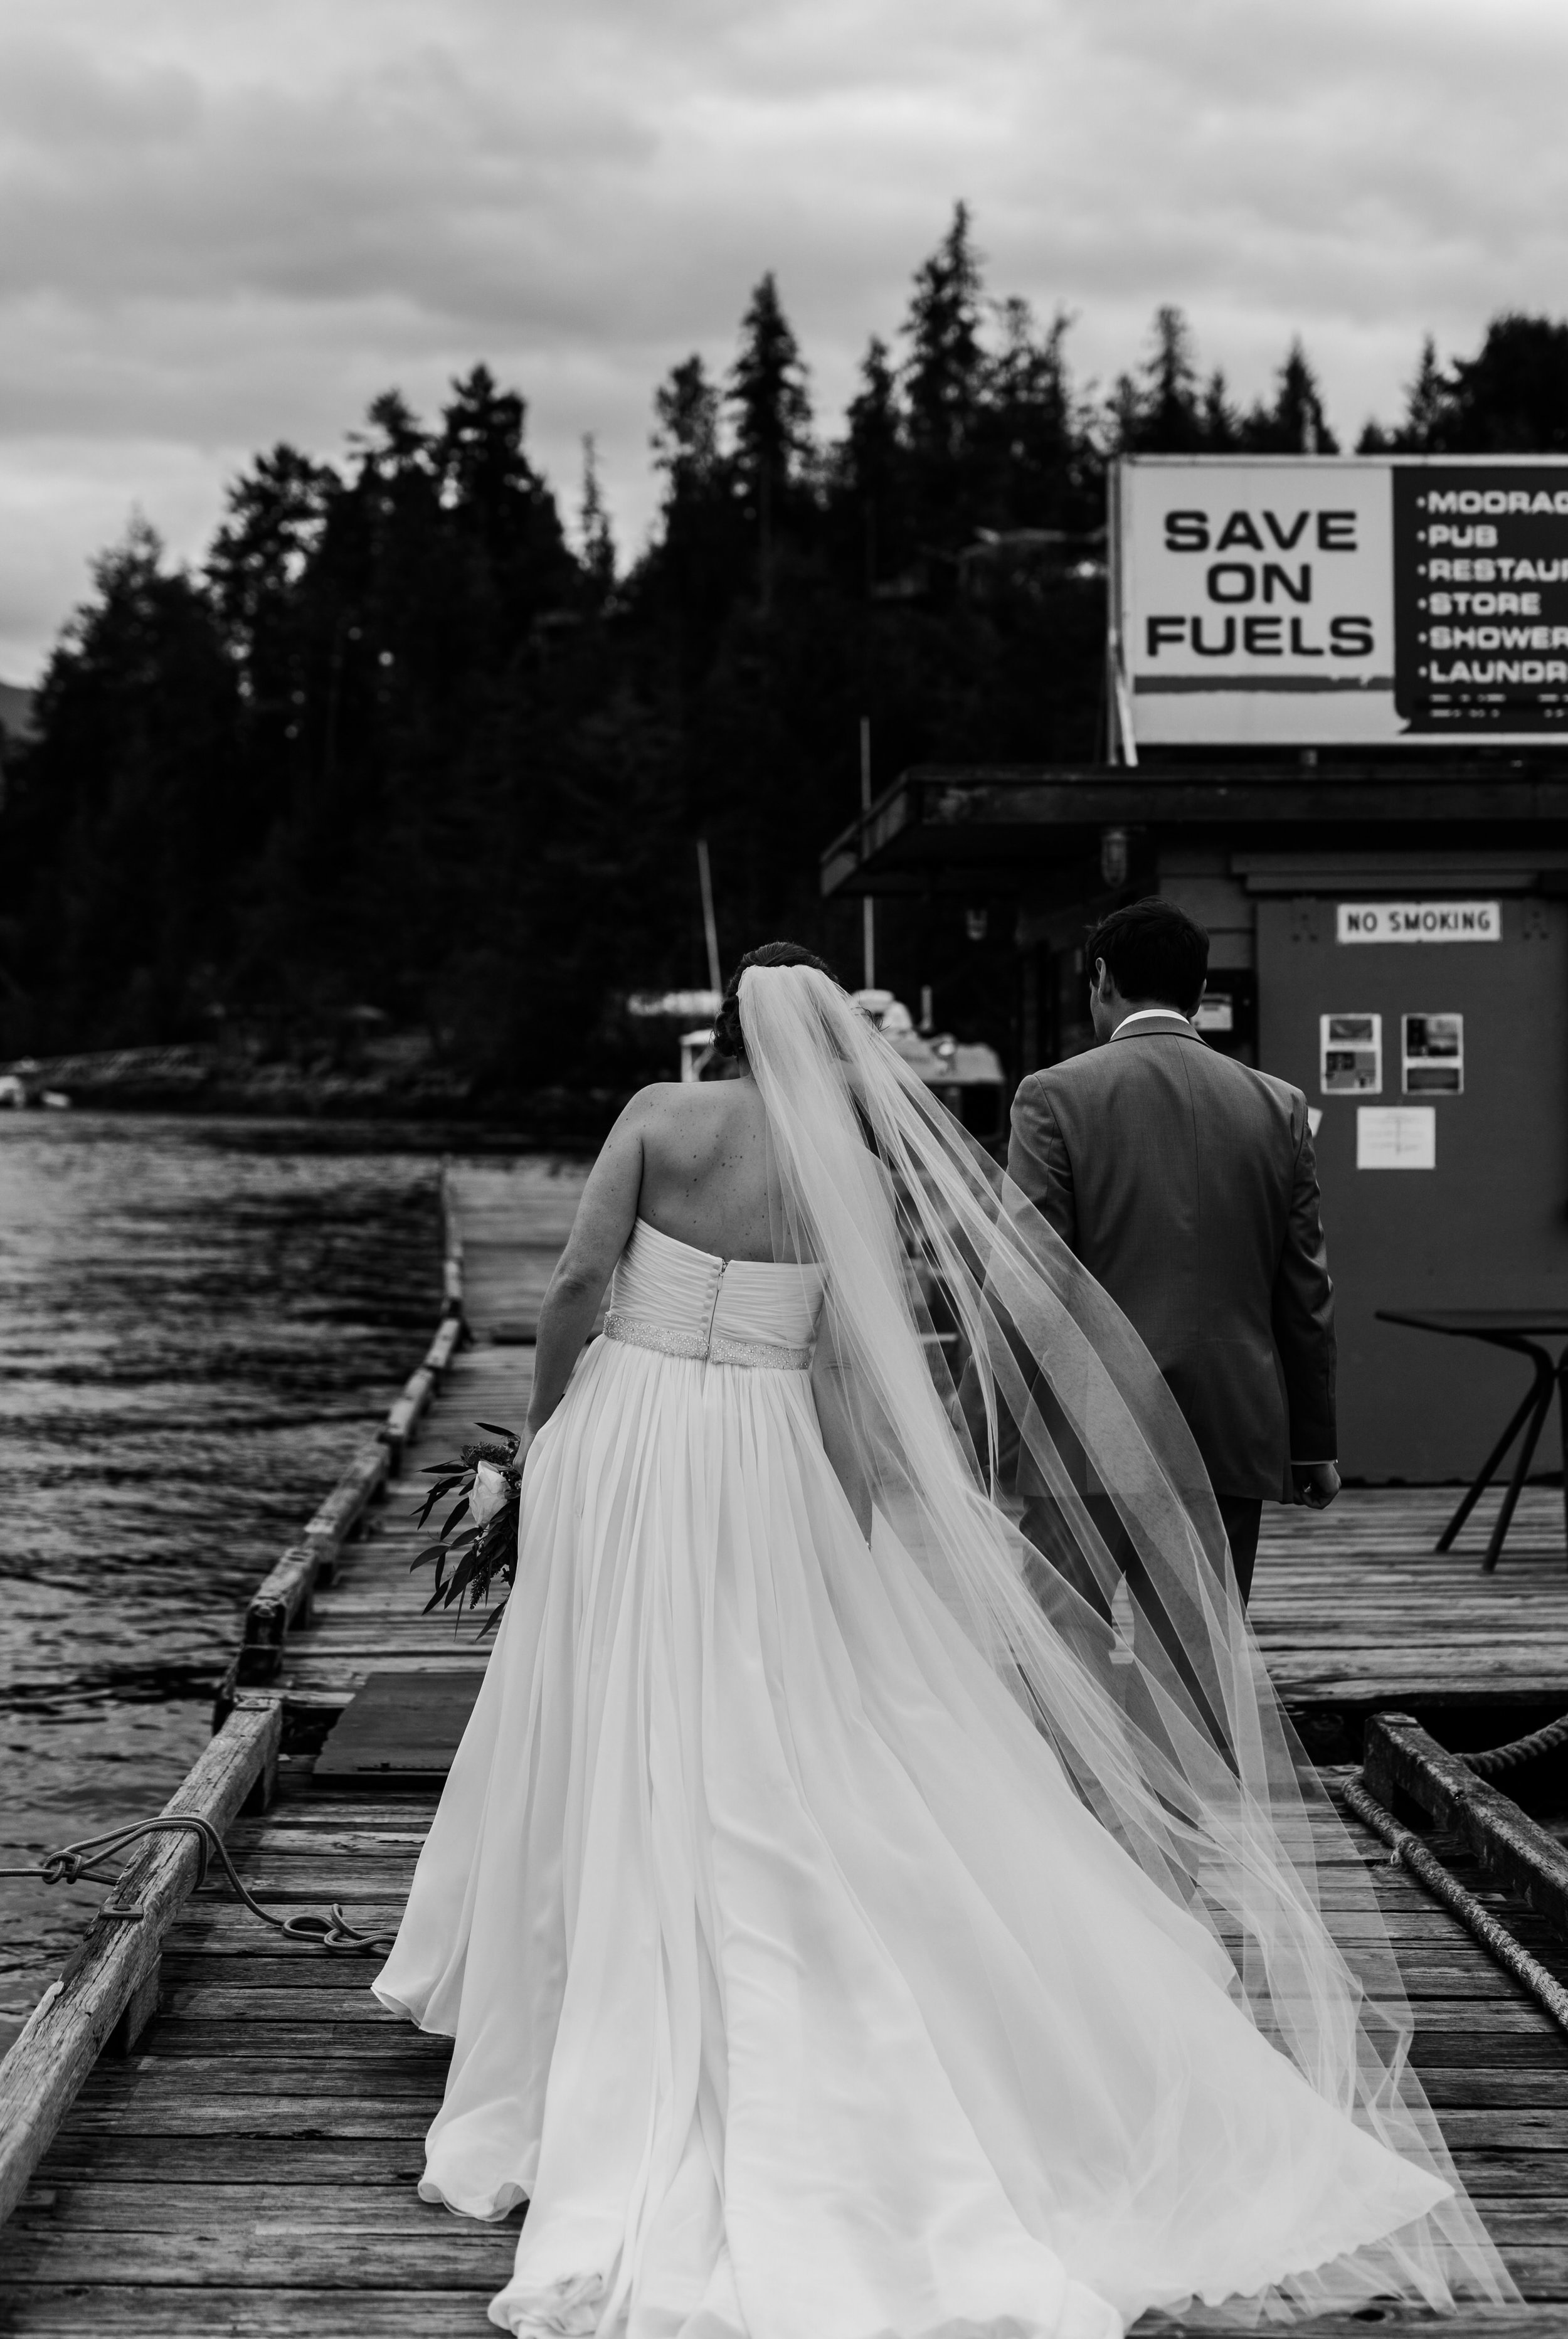 West Coast Wilderness Lodge Wedding Photos - Vancouver Wedding Photographer & Videographer - Sunshine Coast Wedding Photos - Sunshine Coast Wedding Photographer - Jennifer Picard Photography - IMG_6737.jpg